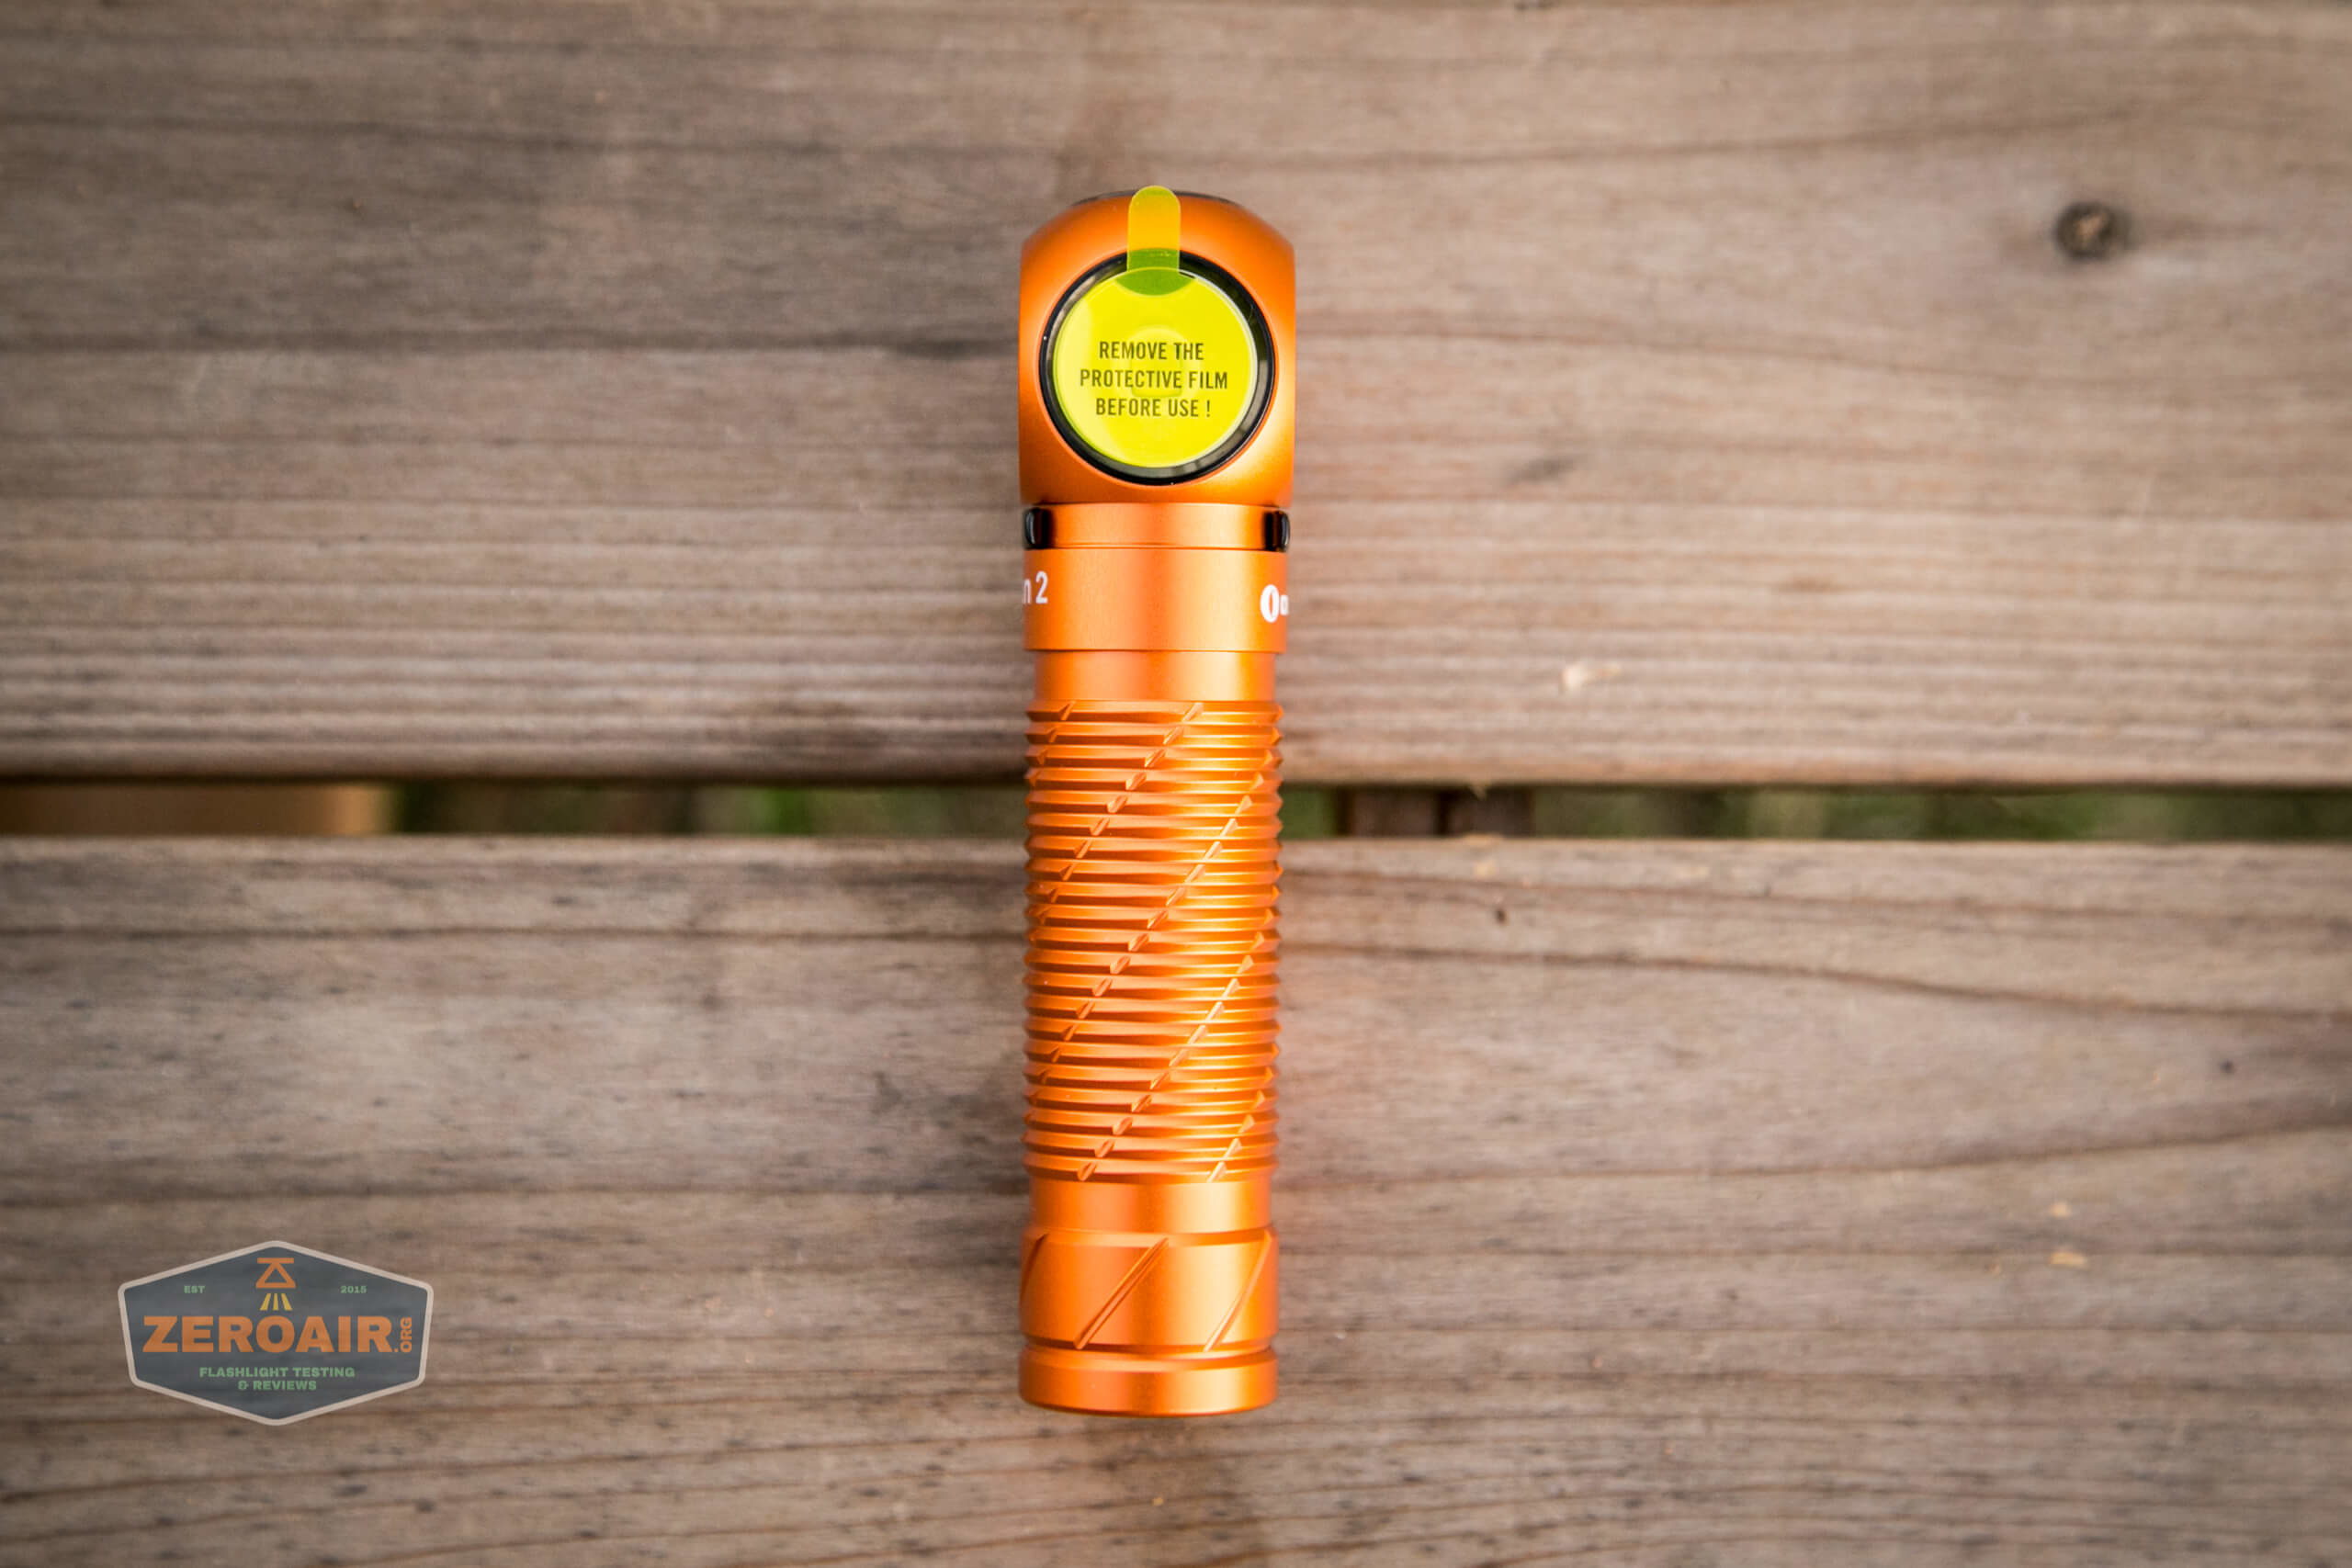 olight perun 2 21700 headlamp orange protective cover on lens